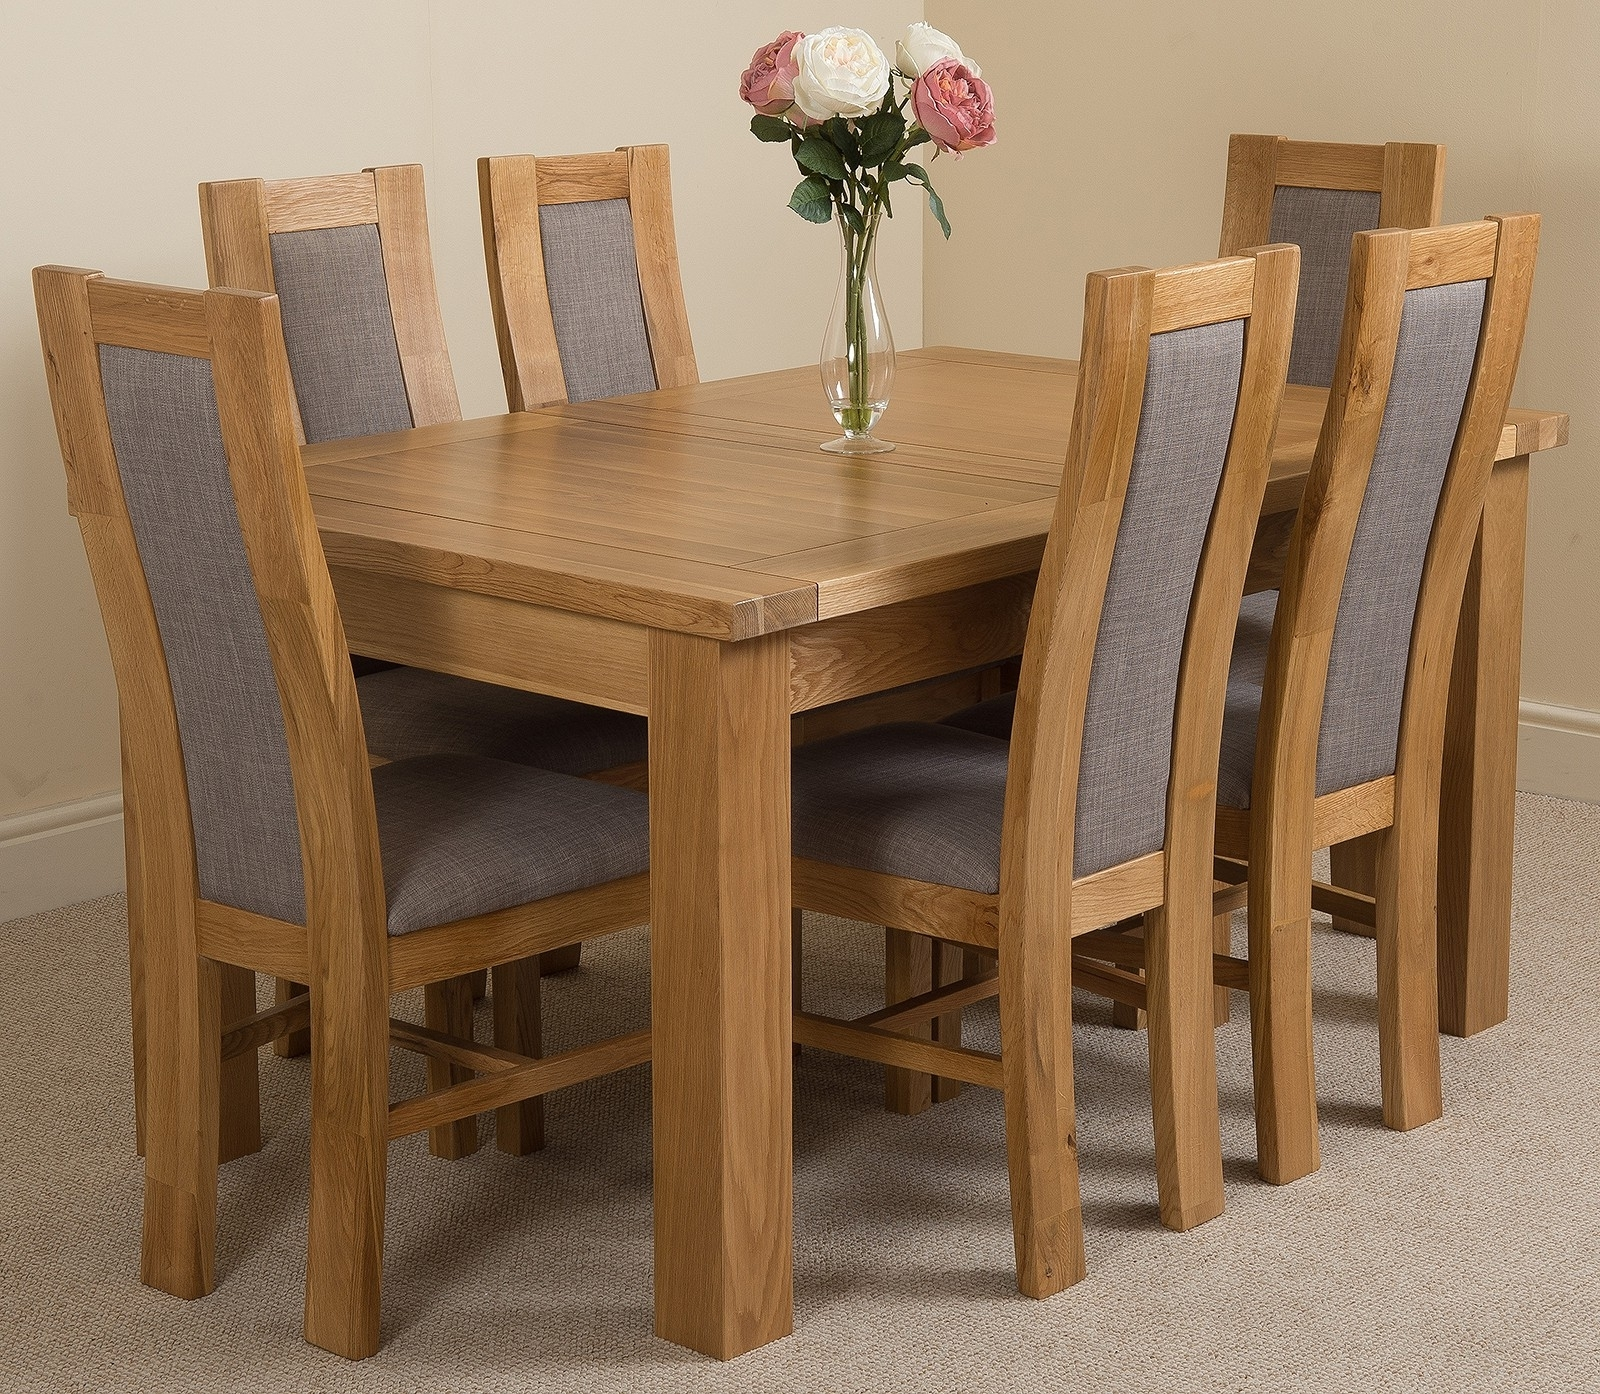 Trendy Extendable Oak Dining Tables And Chairs With Regard To Seattle Dining Set With 6 Stanford Chairs (View 23 of 25)